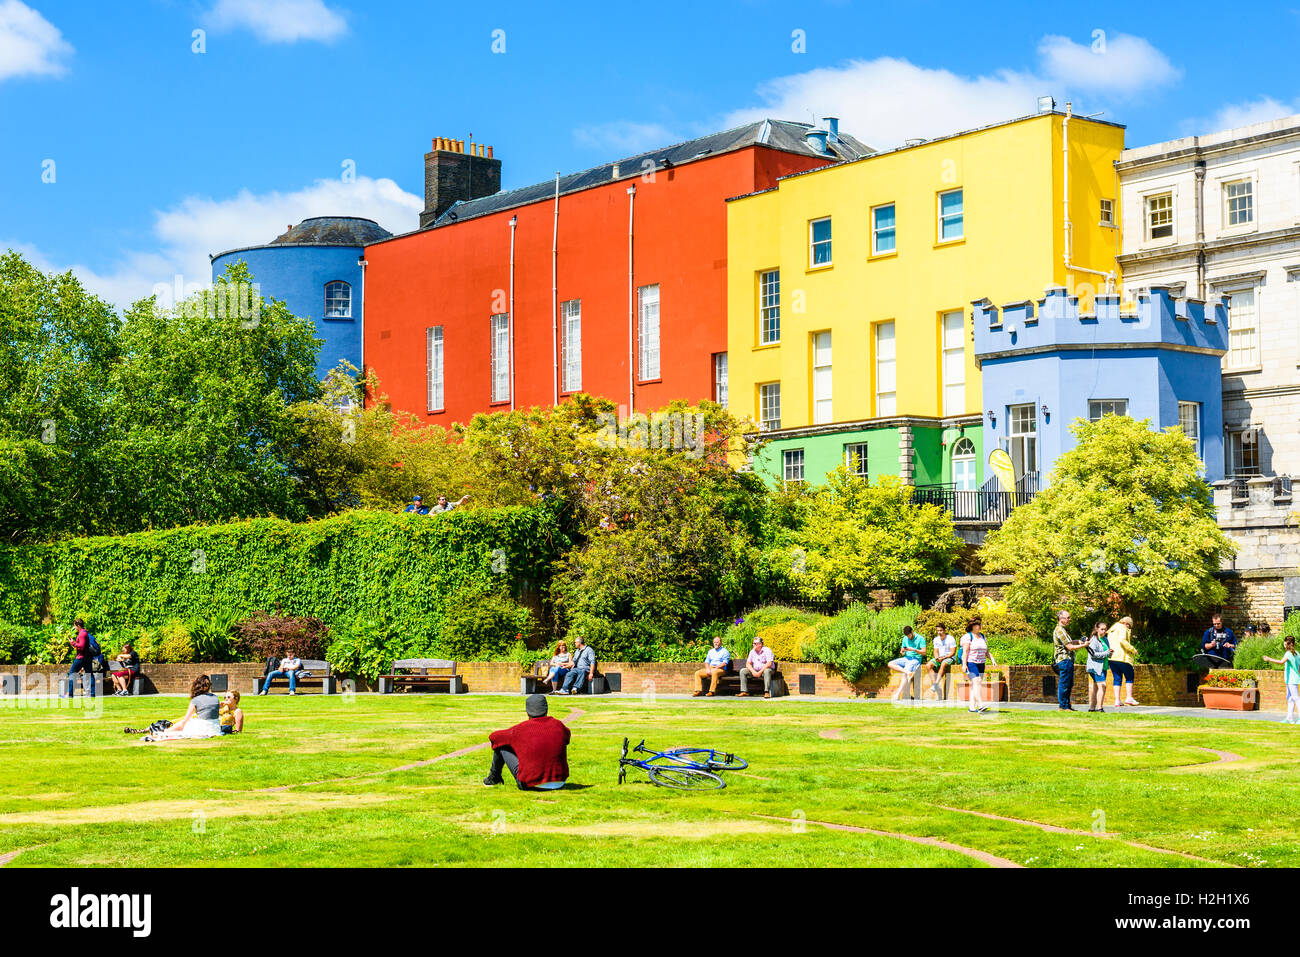 Dubhlinn Gardens and the colourful walls of the State Apartments at Dublin Castle, Ireland - Stock Image